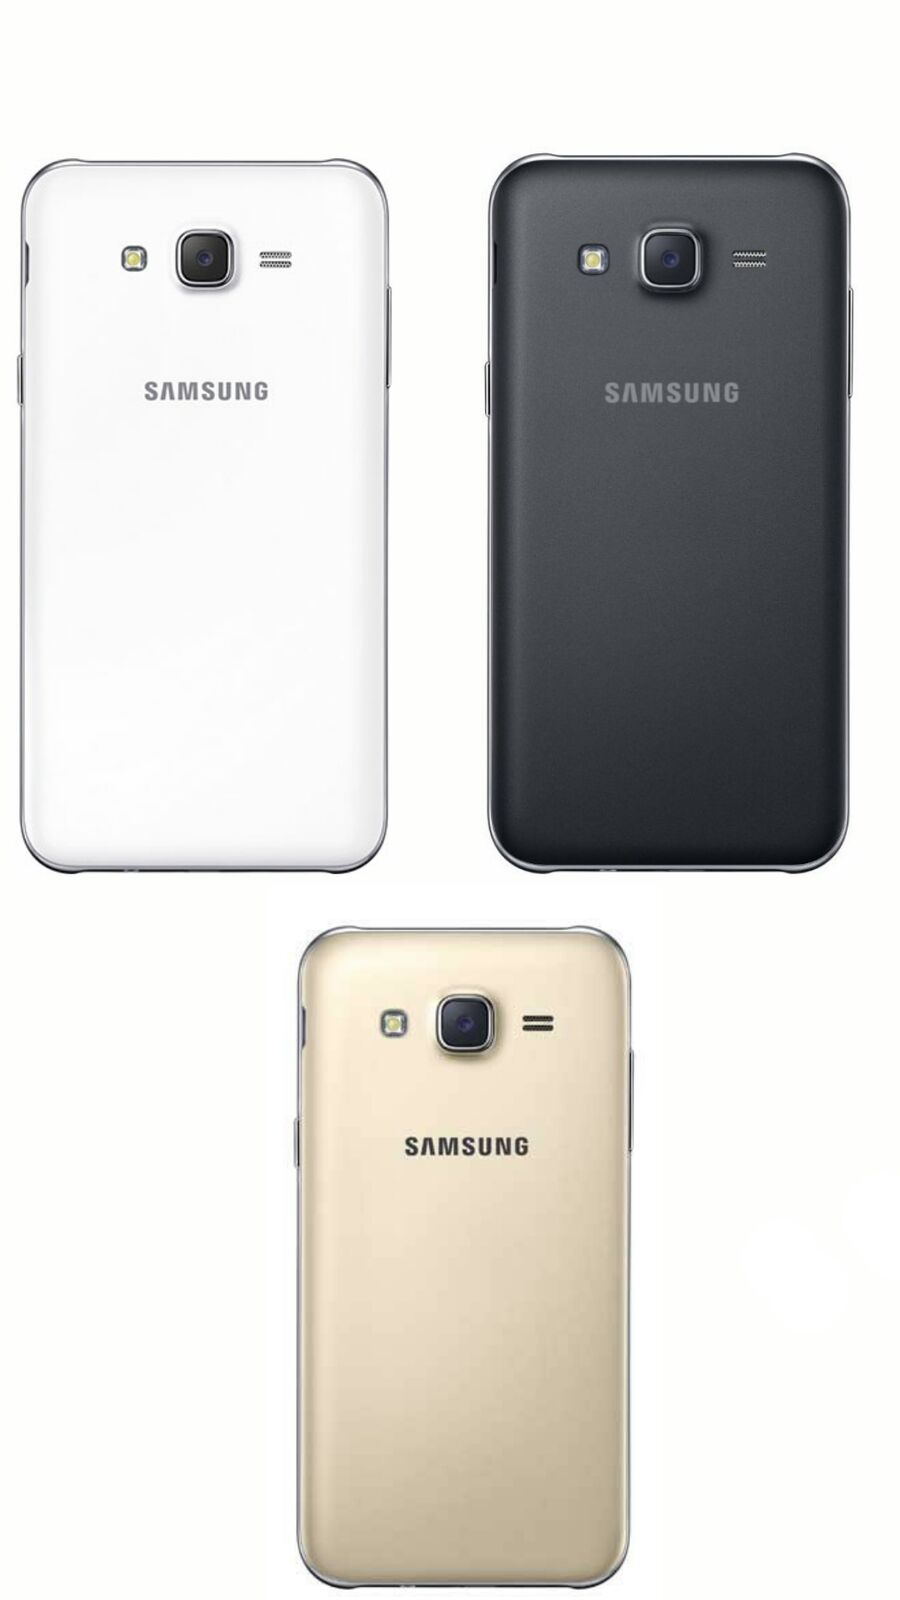 For Samsung Galaxy J5 Sm J500 Back Door Battery Cover Housing Case 1 Of 1free Shipping